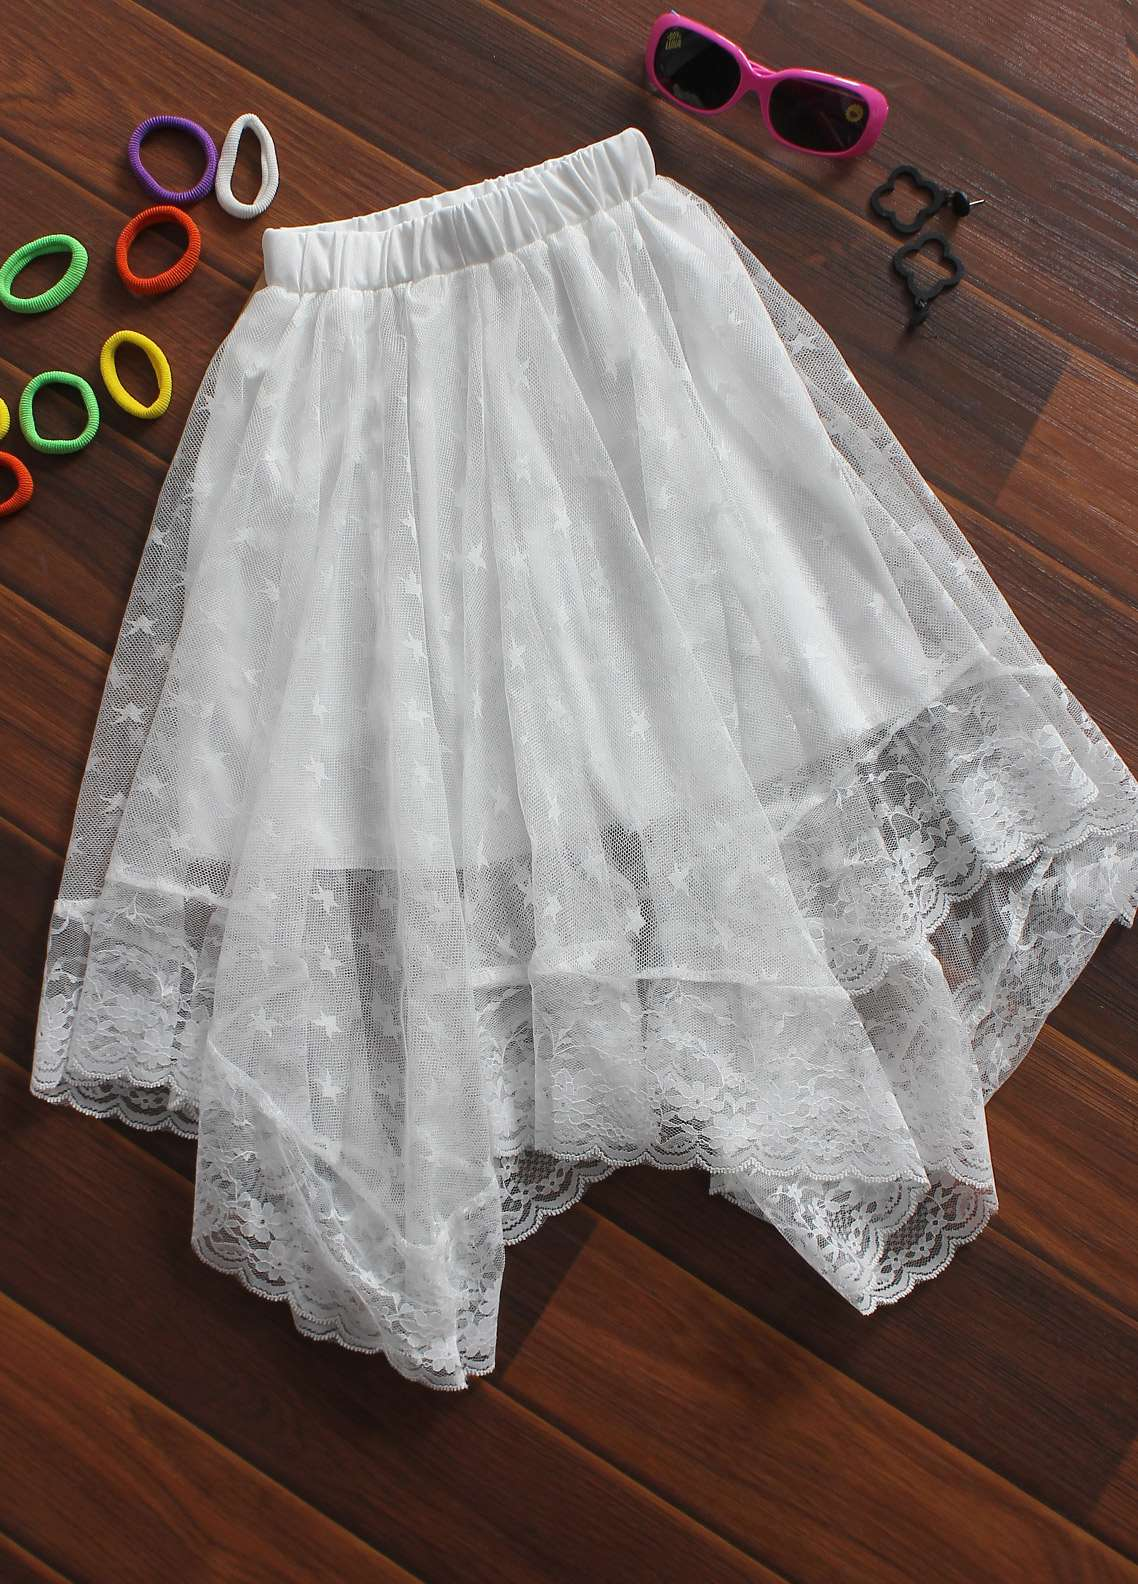 Sanaulla Exclusive Range Cotton Net Fancy Skirts for Girls -  845 White